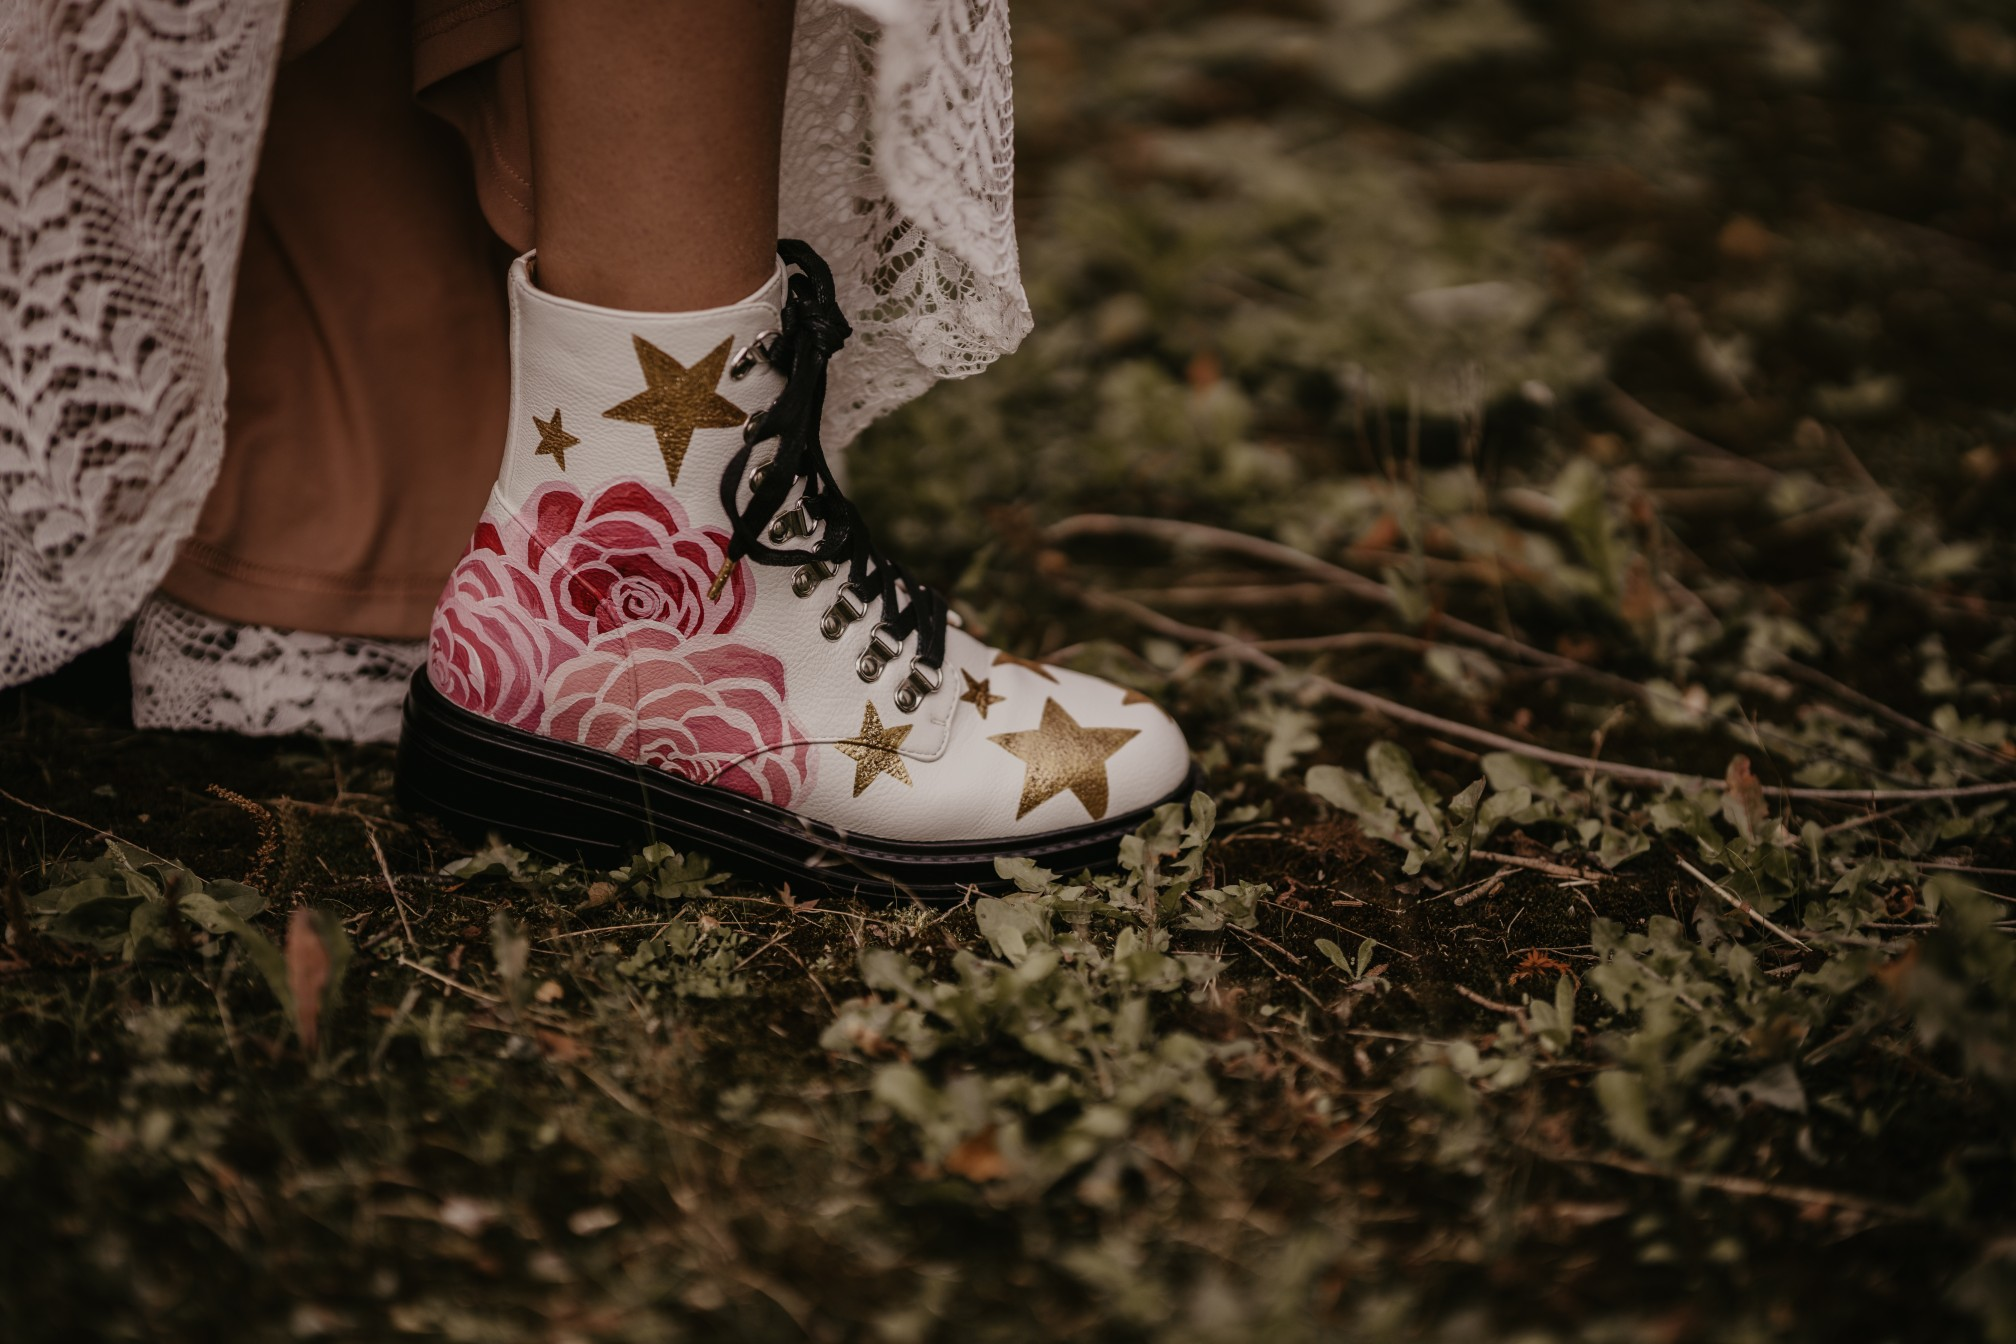 hand painted wedding shoes - bespoke wedding shoes - hand painted dr martens